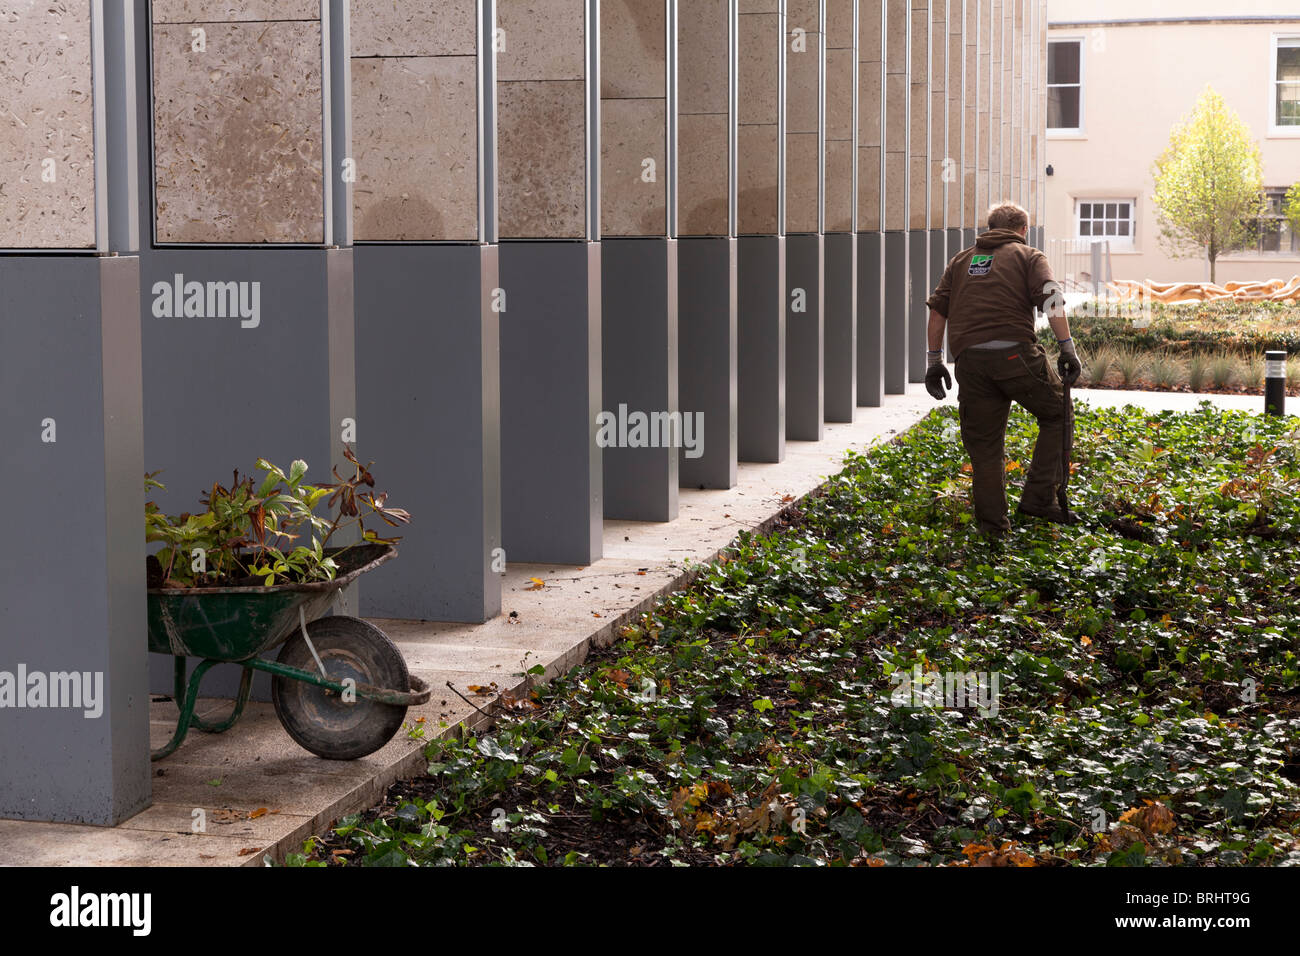 Gardiner and wheelbarrow working on commercial building - Stock Image